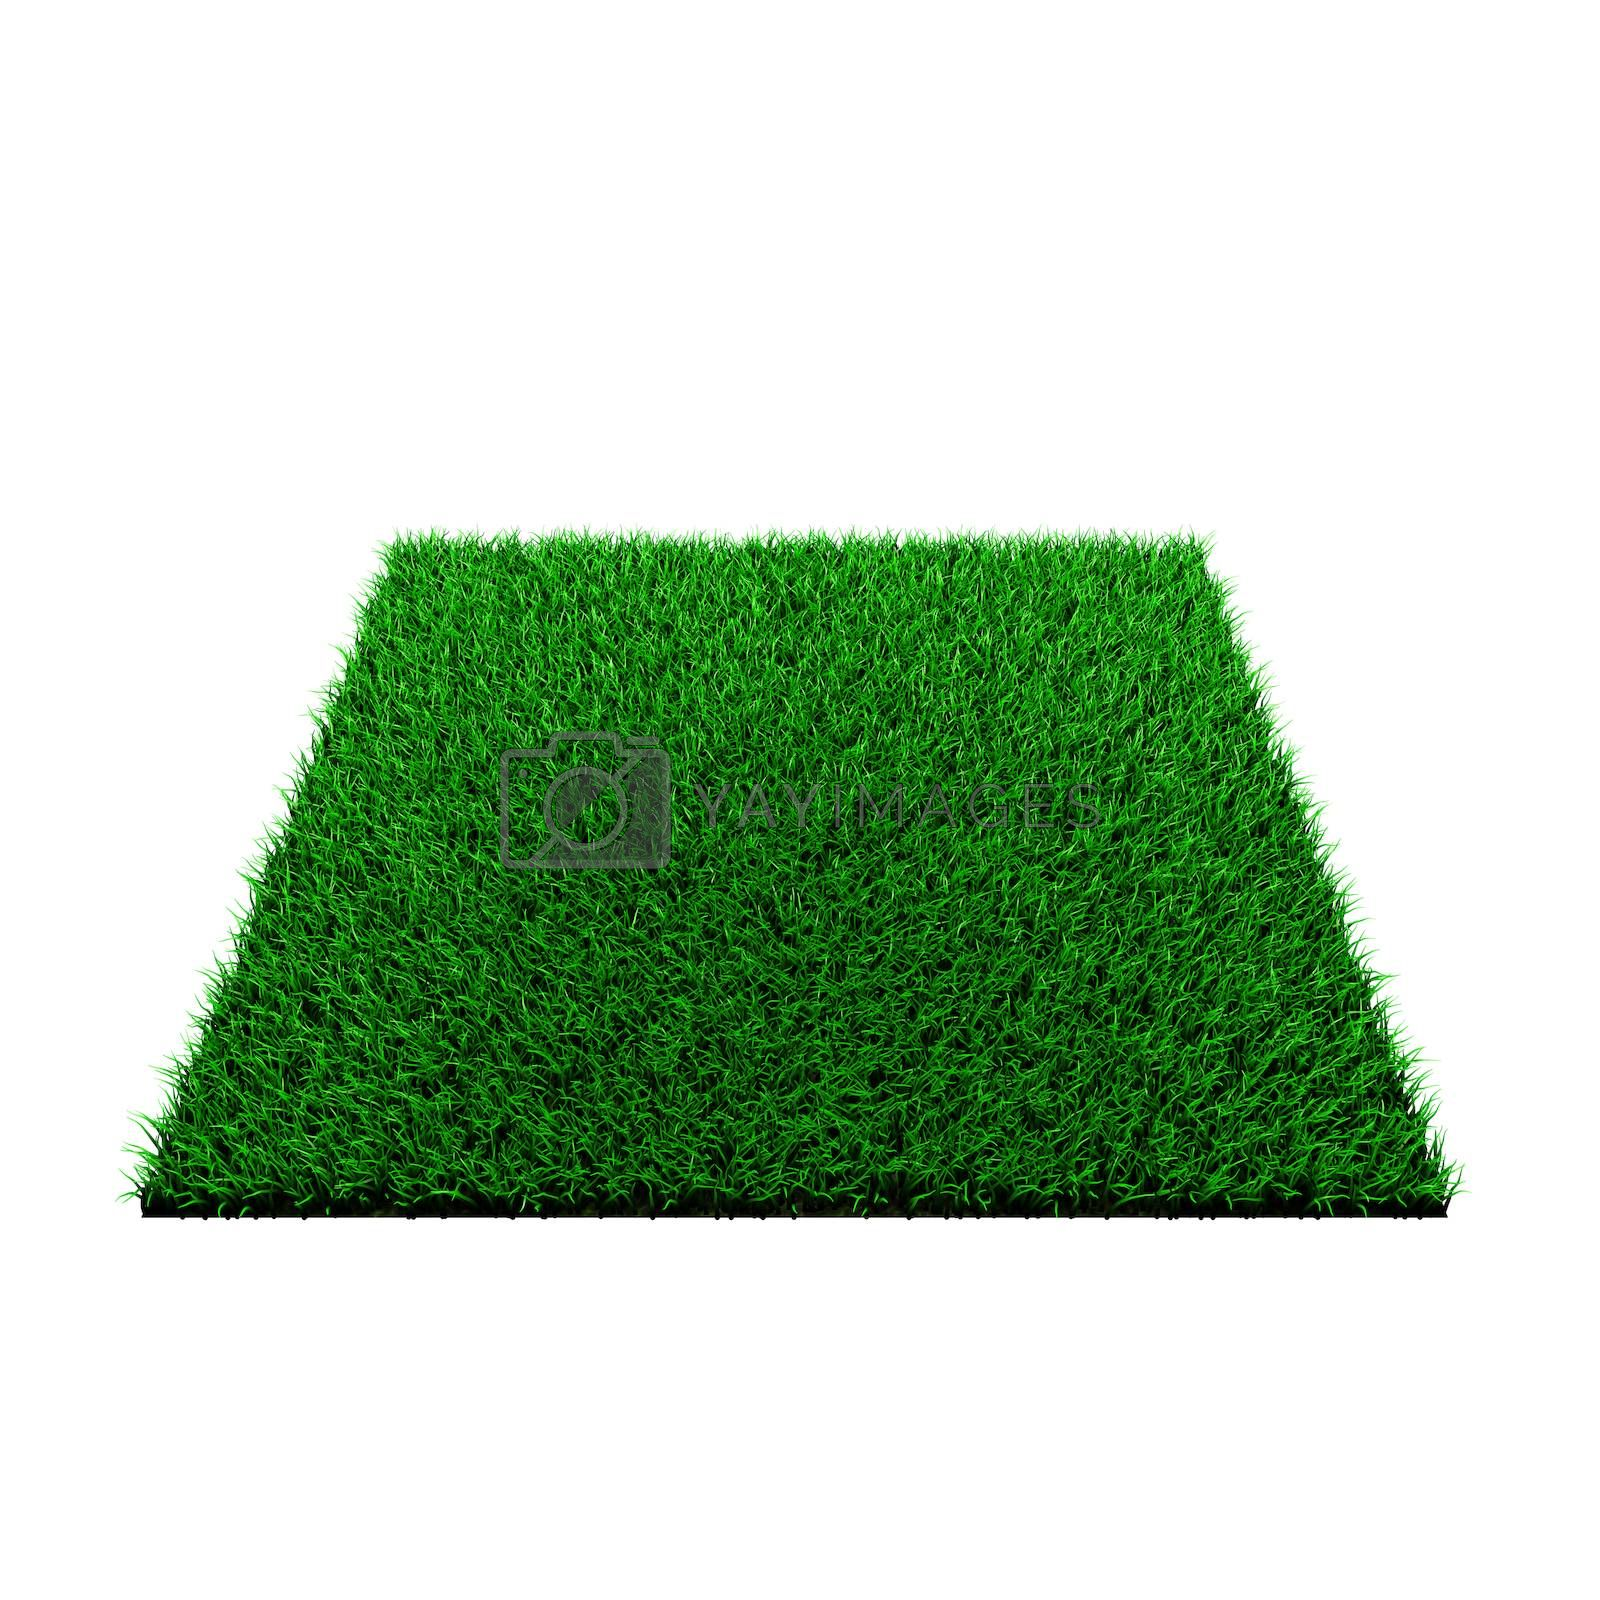 grass squared portion isolated on white background